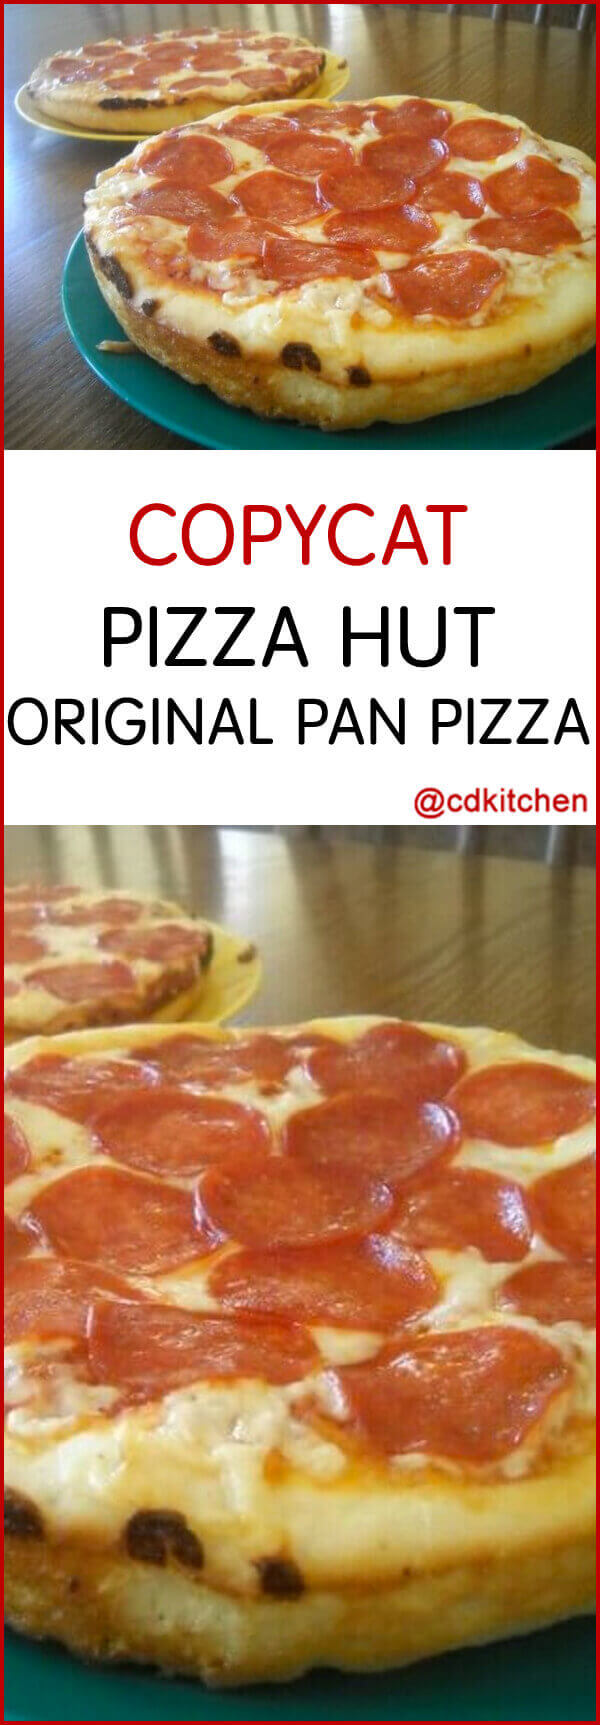 Copycat Pizza Hut Original Pan Pizza Recipe Cdkitchen Com